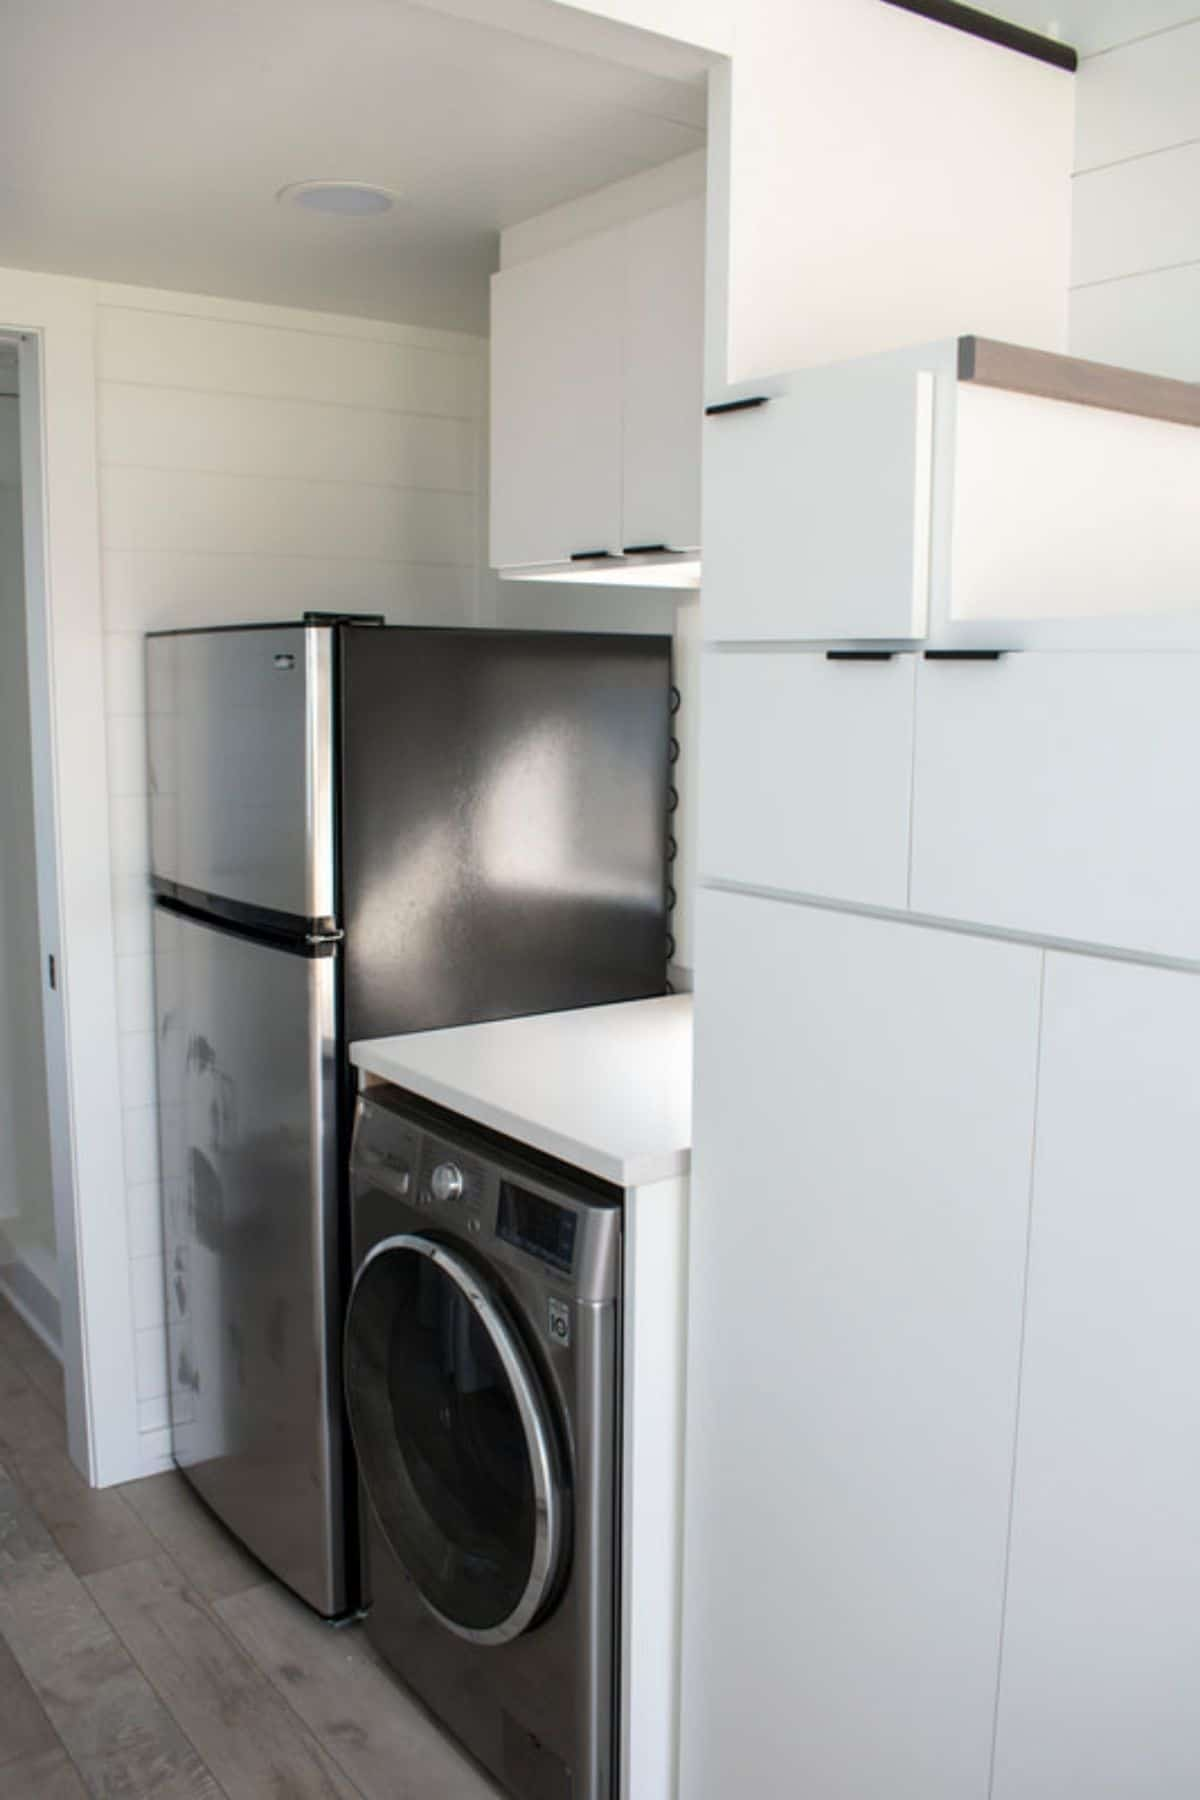 Stainless steel refrigerator next to white cabinets and washing machine